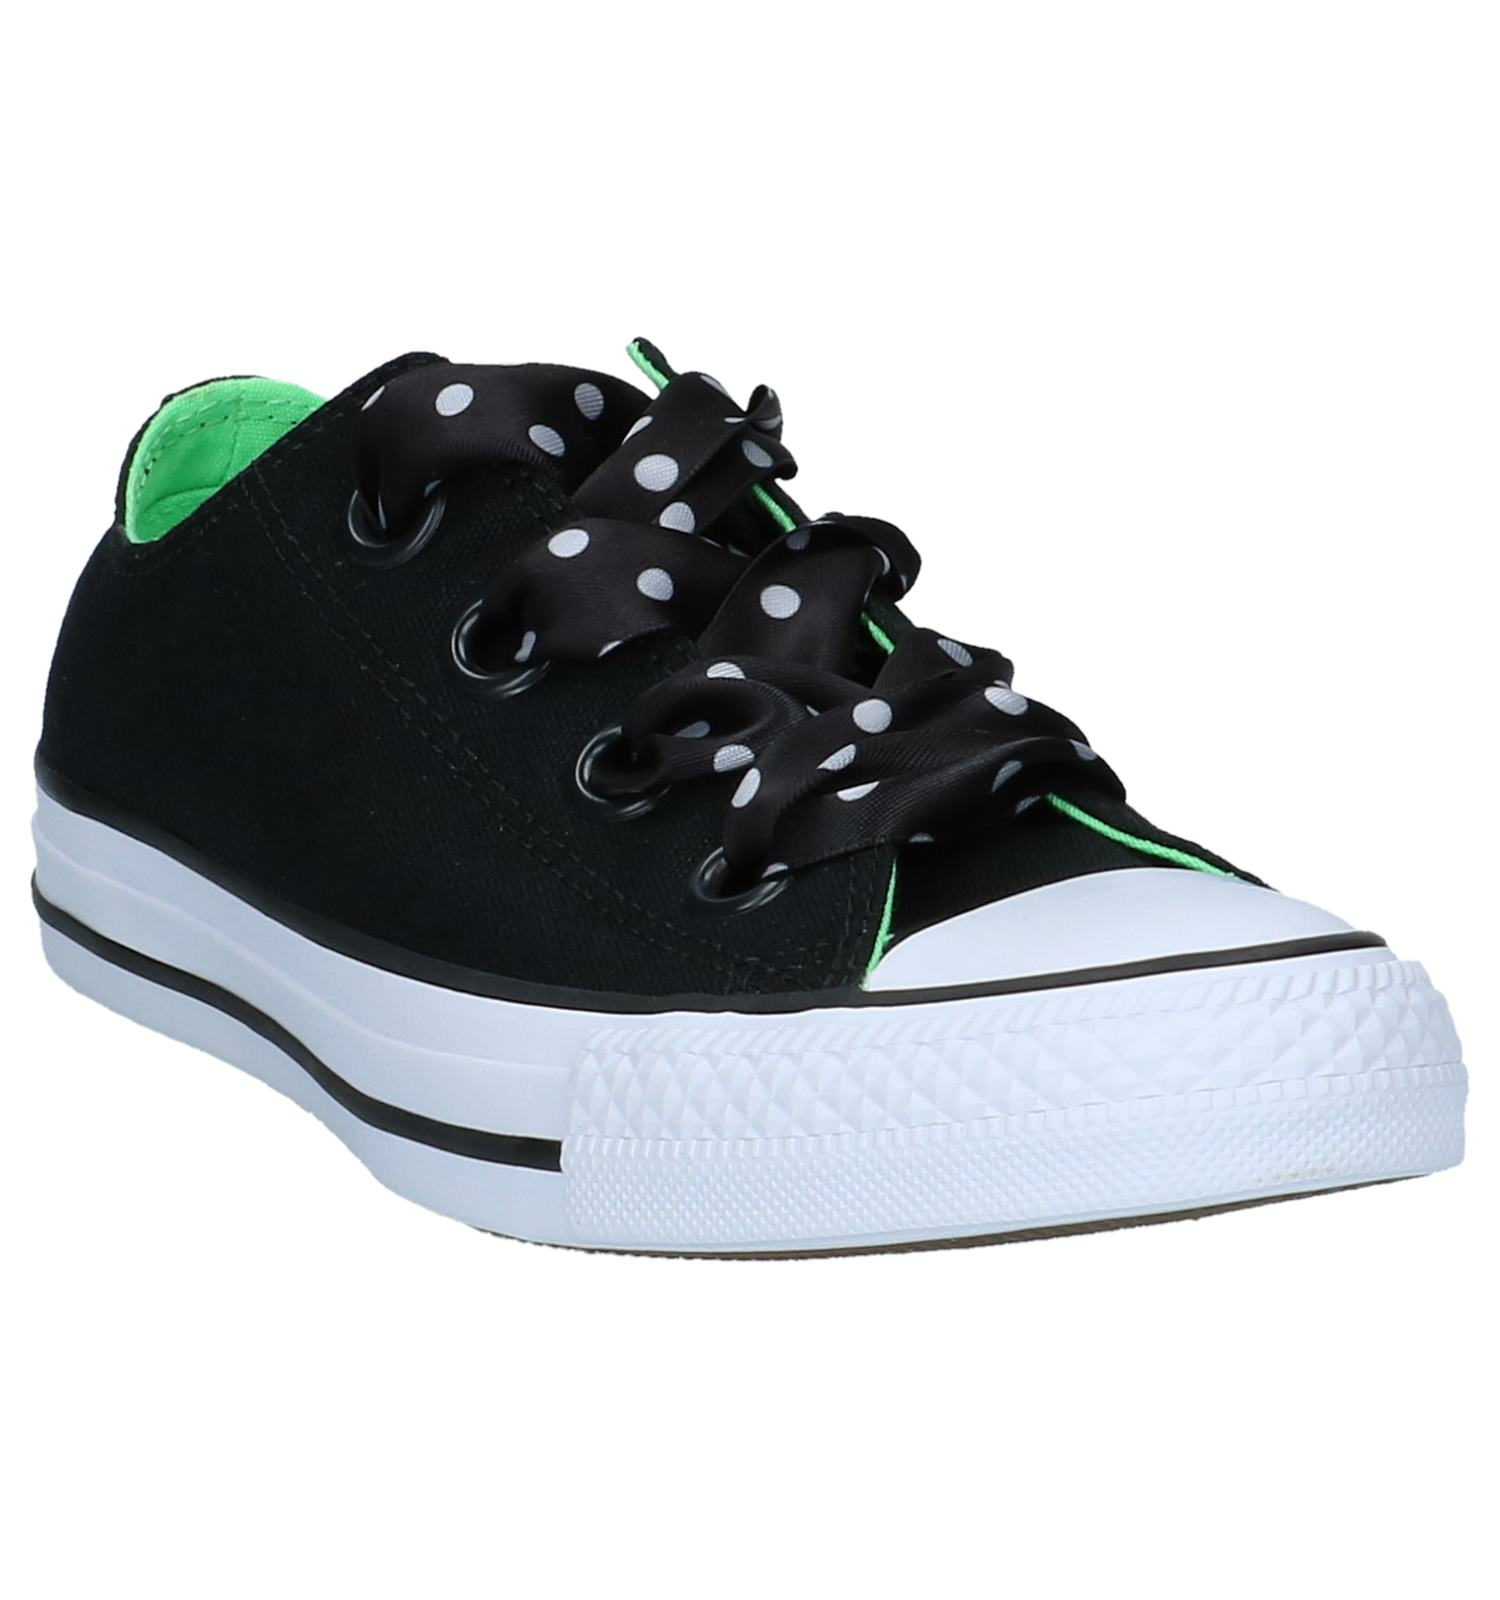 Lage Big All Chuck Converse Sportieve Star Eyelets Taylor Sneakers 7nr74RO